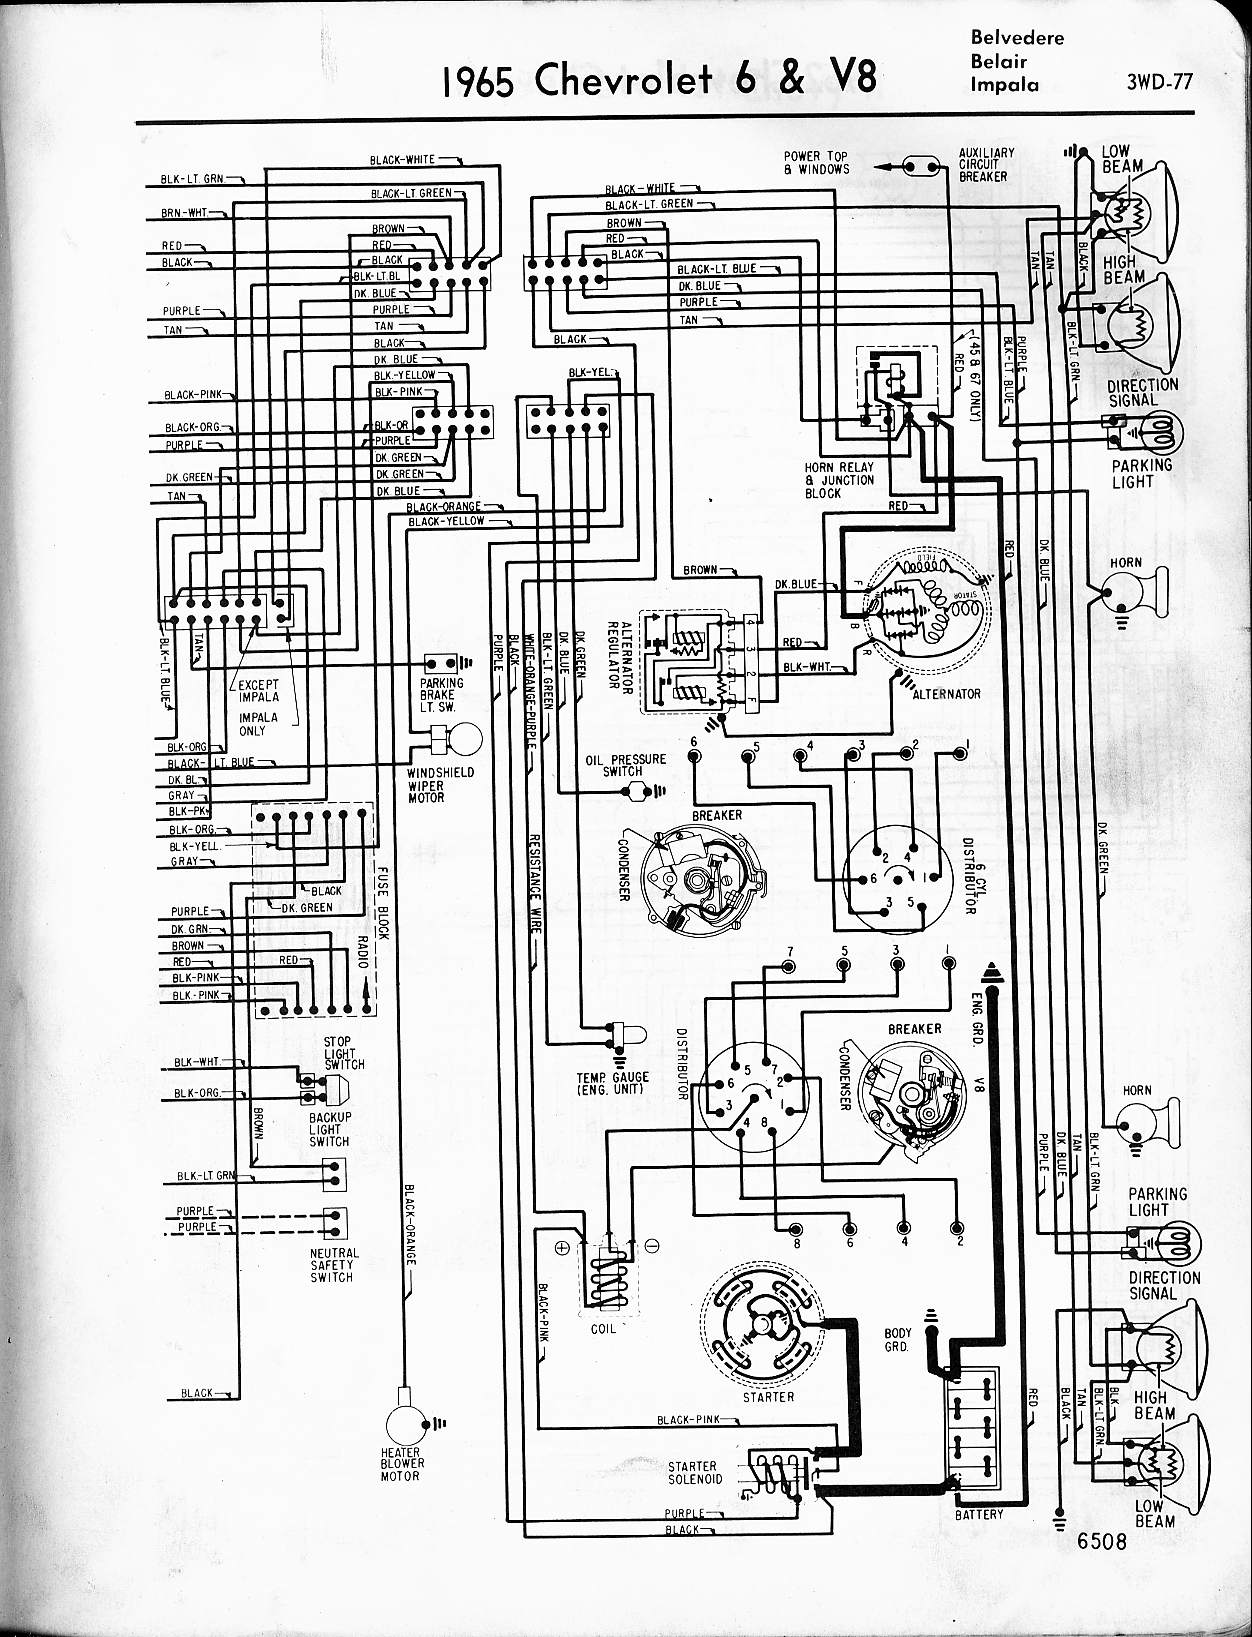 57 65 chevy wiring diagrams 1963 Chevy Impala Wiring Diagram 2012 Impala  Radio Wiring Diagram